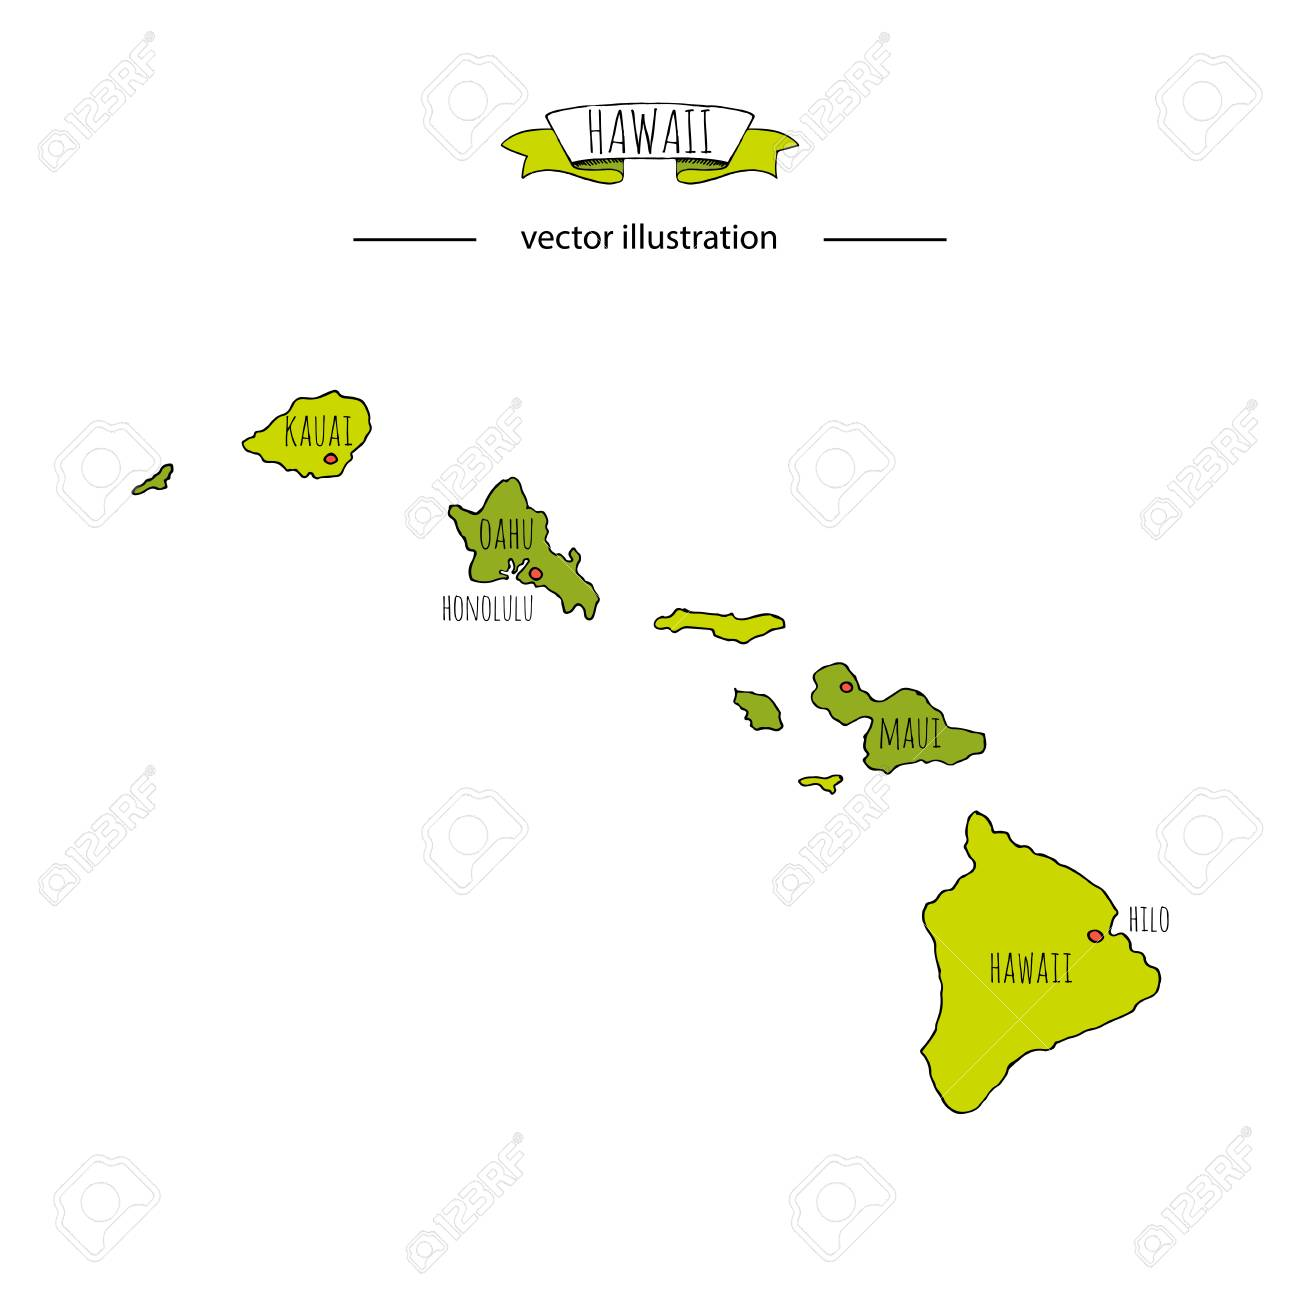 Hand drawn doodle Hawaii map icon Vector illustration isolated.. on map of the grand canyon, map of arizona, map of michigan, map of philippines, map of hawaiian islands, map of americas, map of cleveland, map of north carolina, map of usa, map of illinois, map of waikiki, map of mexico, map of pearl harbor, map of italy, map of oahu, map of guam, map of florida, map of massachusetts, map of the panama canal, map of maine, map of texas, map of molokai, map of new jersey, map of maui, map of virginia, map of alaska, map of china, map of bahamas, map of kauai, map of canada, google maps hawaii, map of mauna loa, map of ohio, map of united states, map of georgia, map of delaware, map of new york, map of big island, map of california,